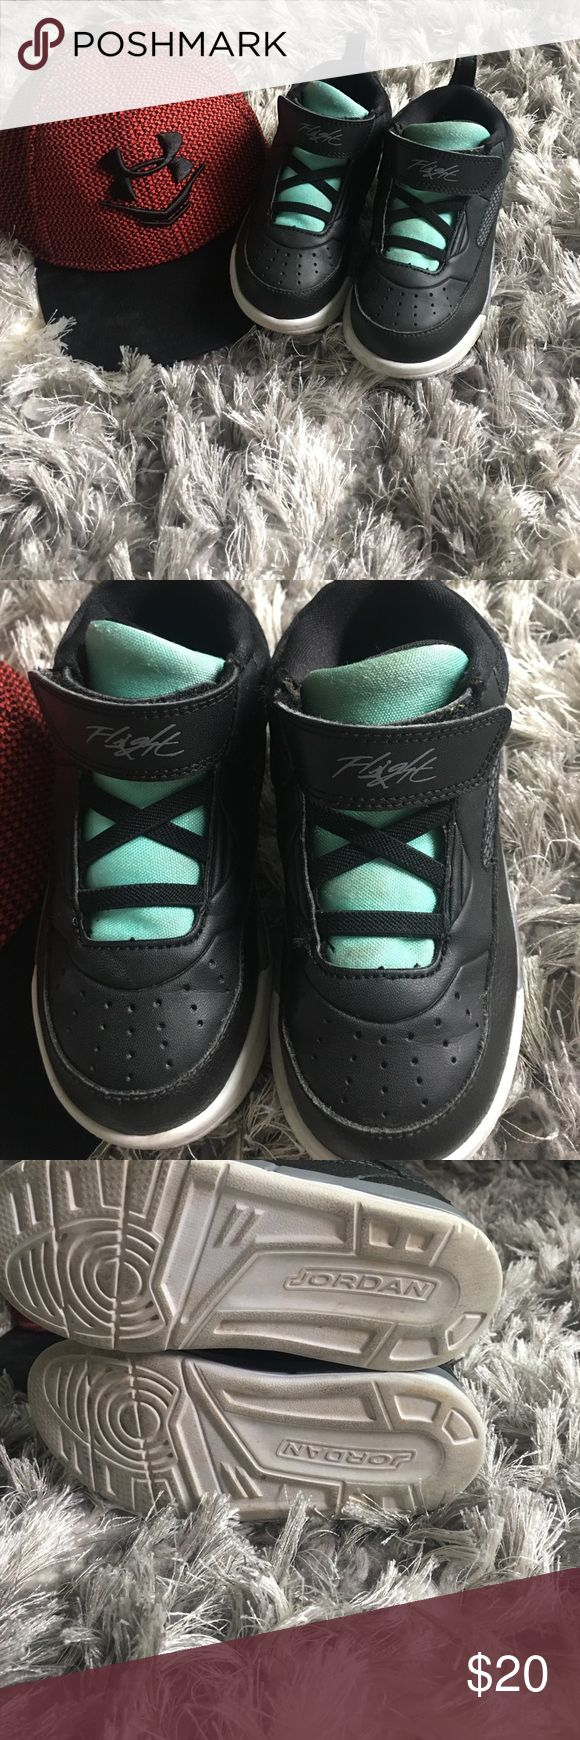 Jordan flights (toddler) The coolest Jordan flight shoes black leather with contrasting aqua! Excellent condition almost no wear. Air Jordan Shoes Sneakers